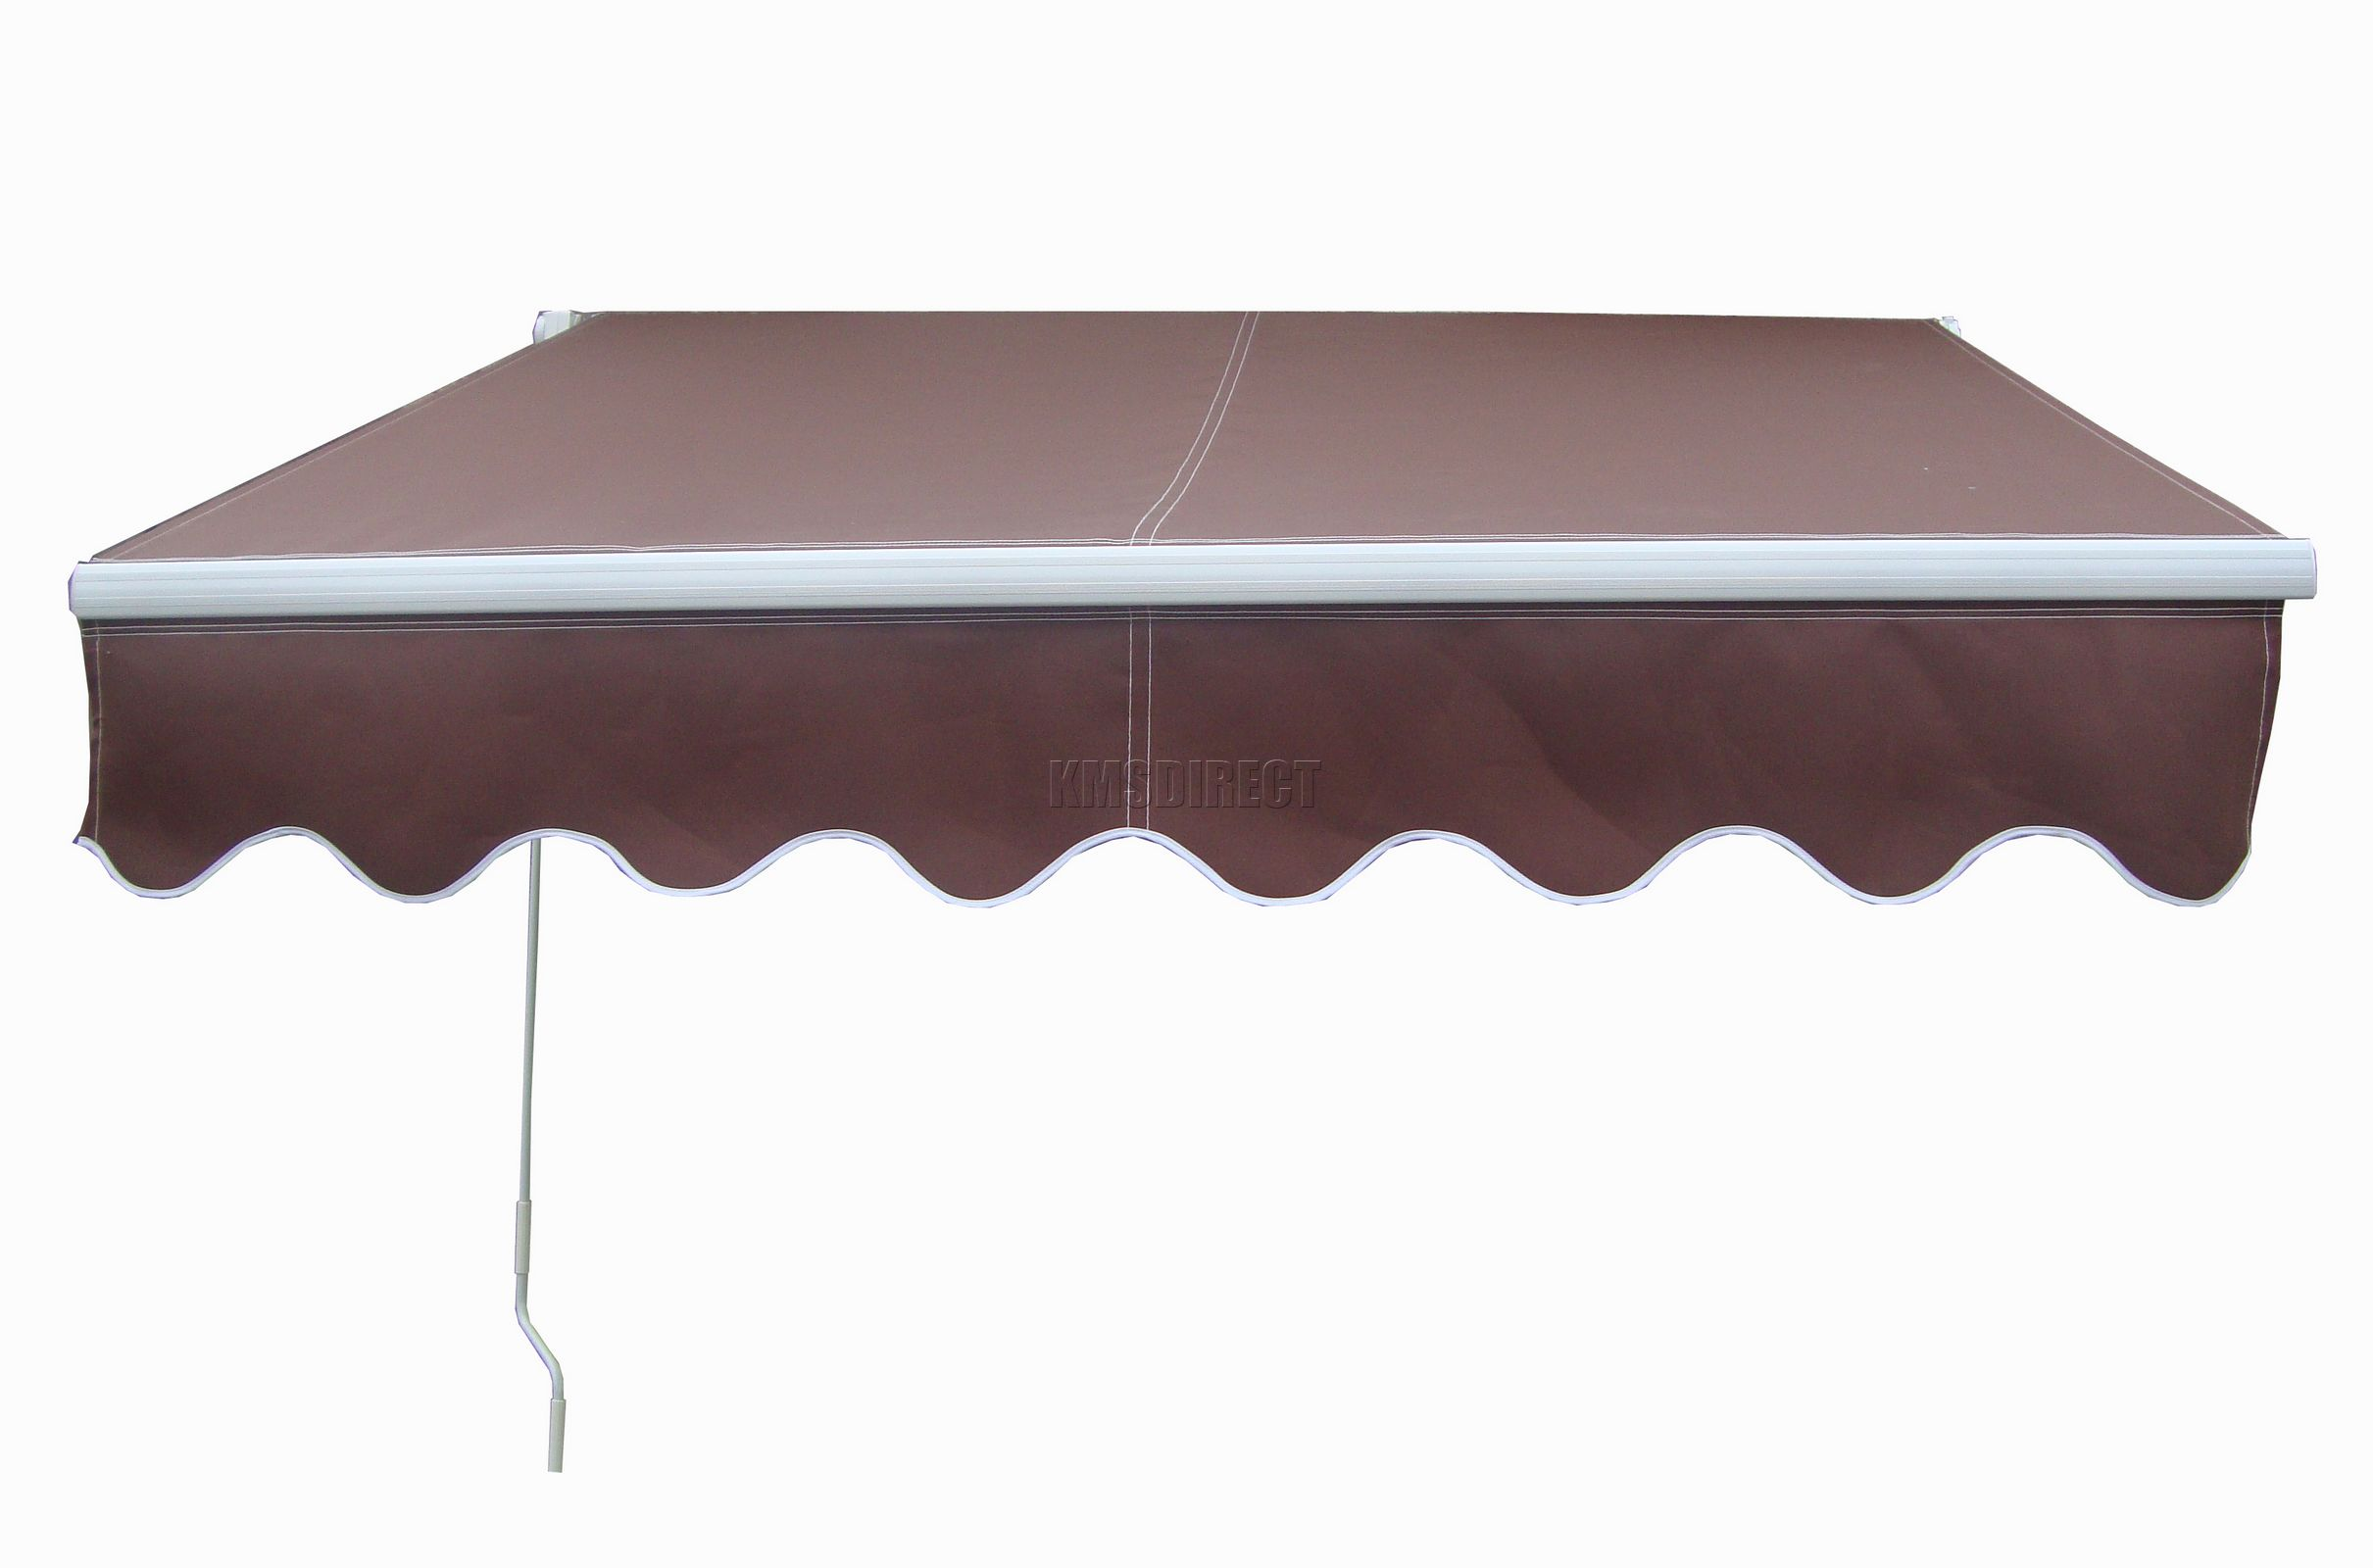 Patio manual retractable awning canopy sun shade shelter for Retractable patio awning canopy